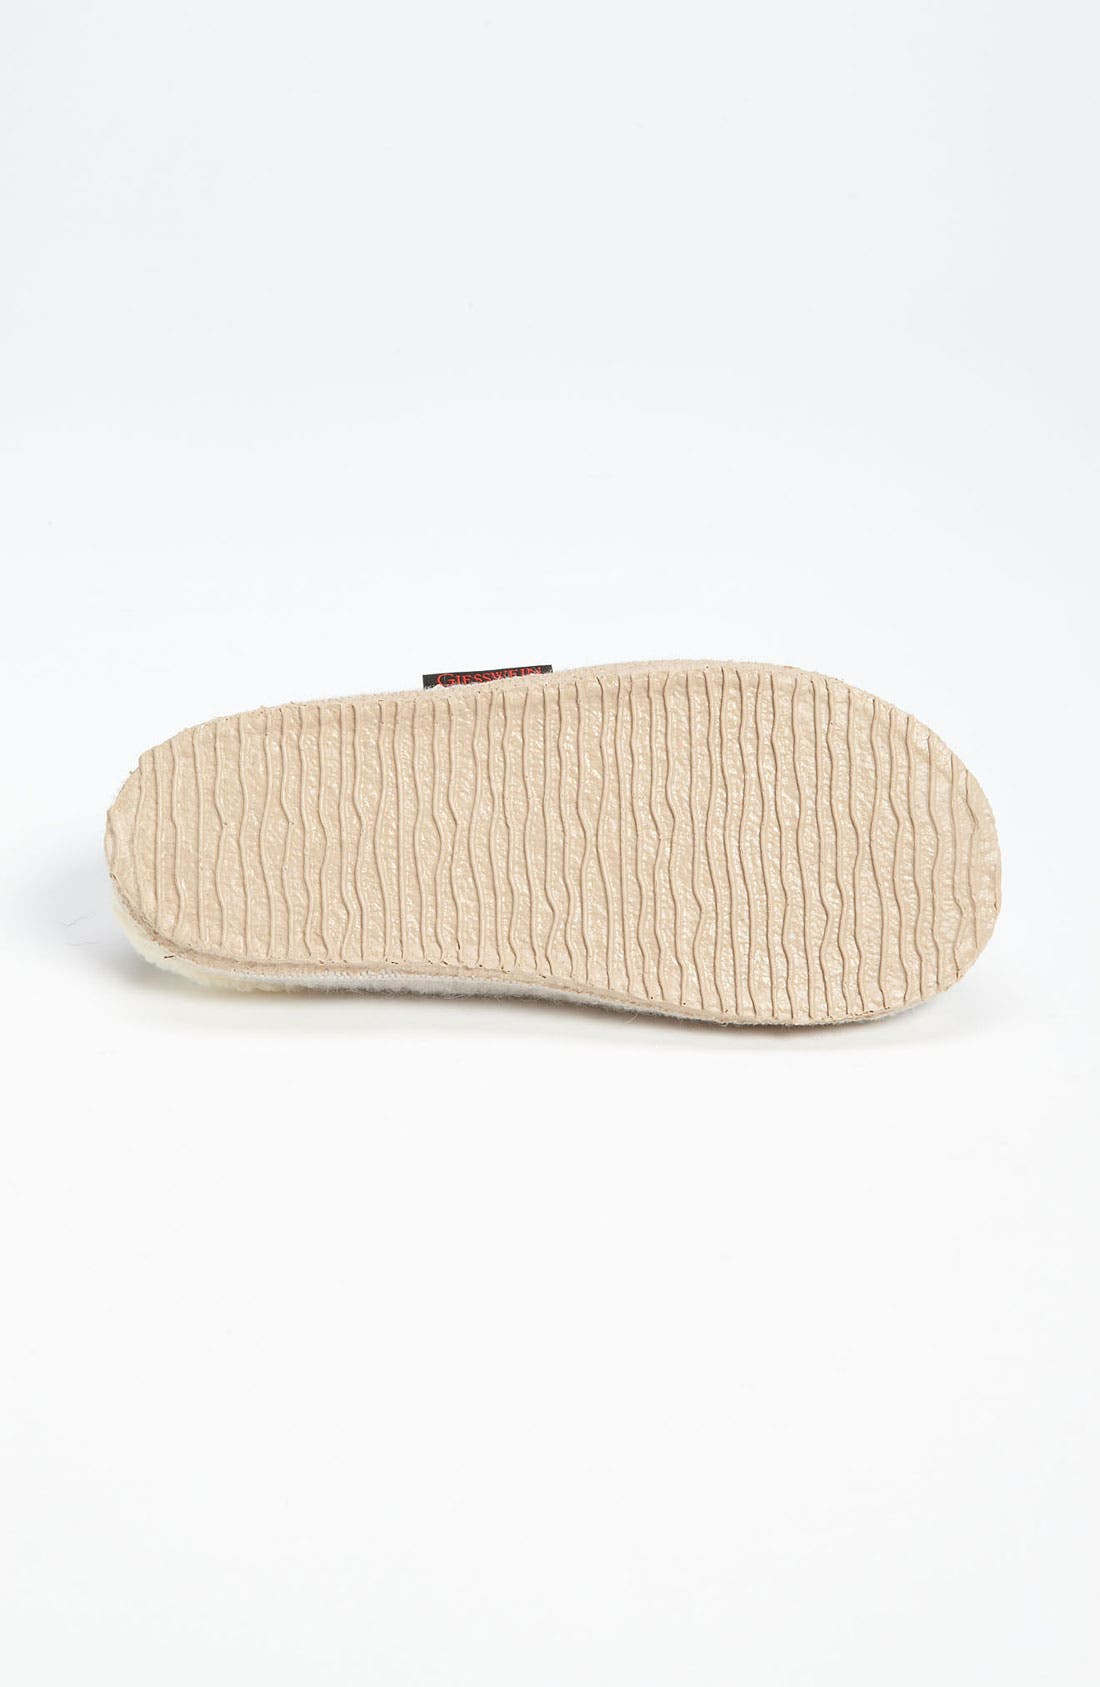 'Traun' Slipper,                             Alternate thumbnail 4, color,                             Lamm